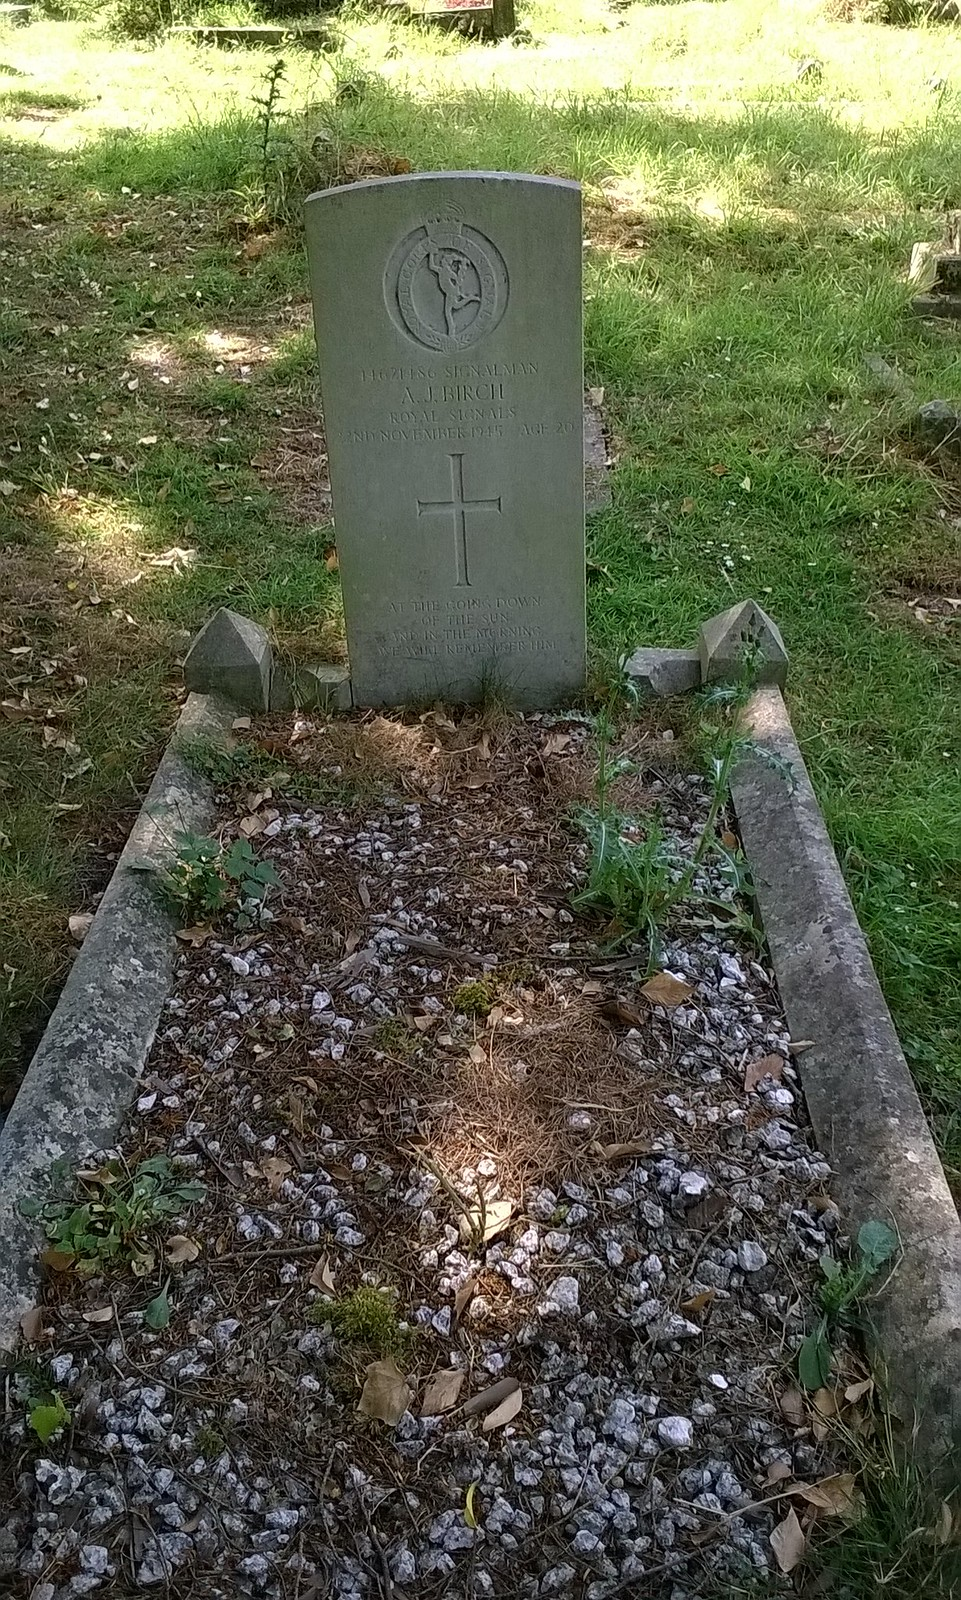 Young signalman's final resting place Behind the mausoleum